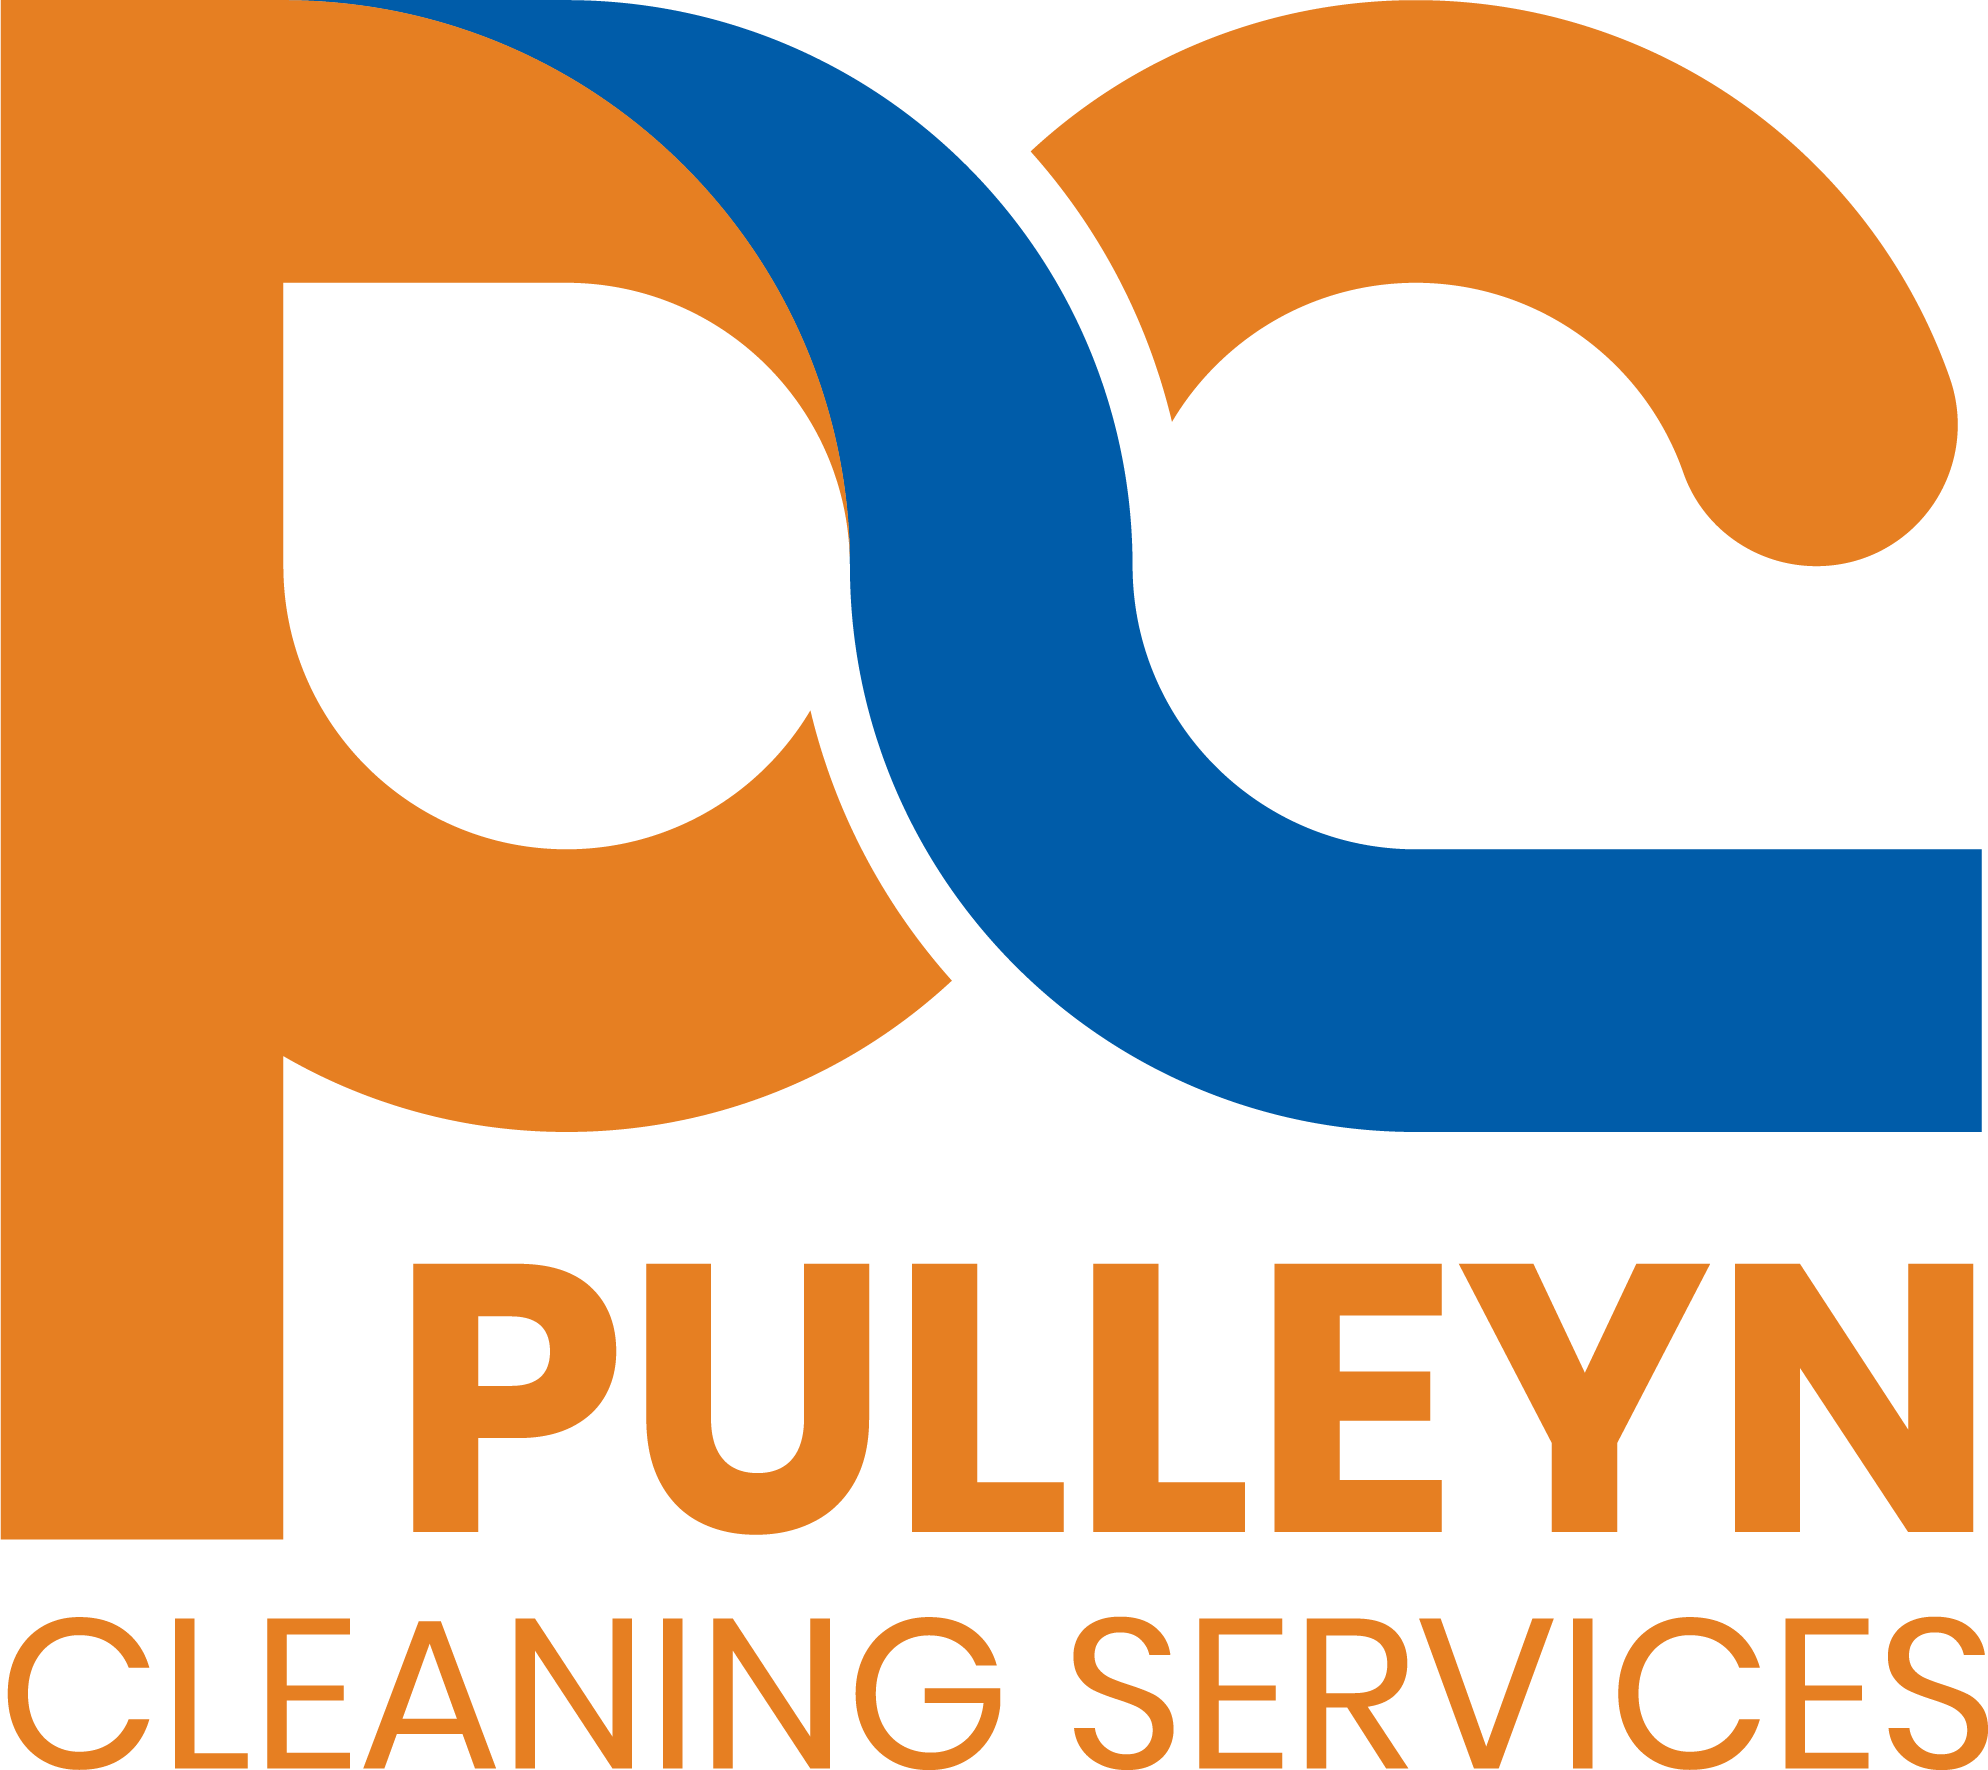 Pulleyn Cleaning Services